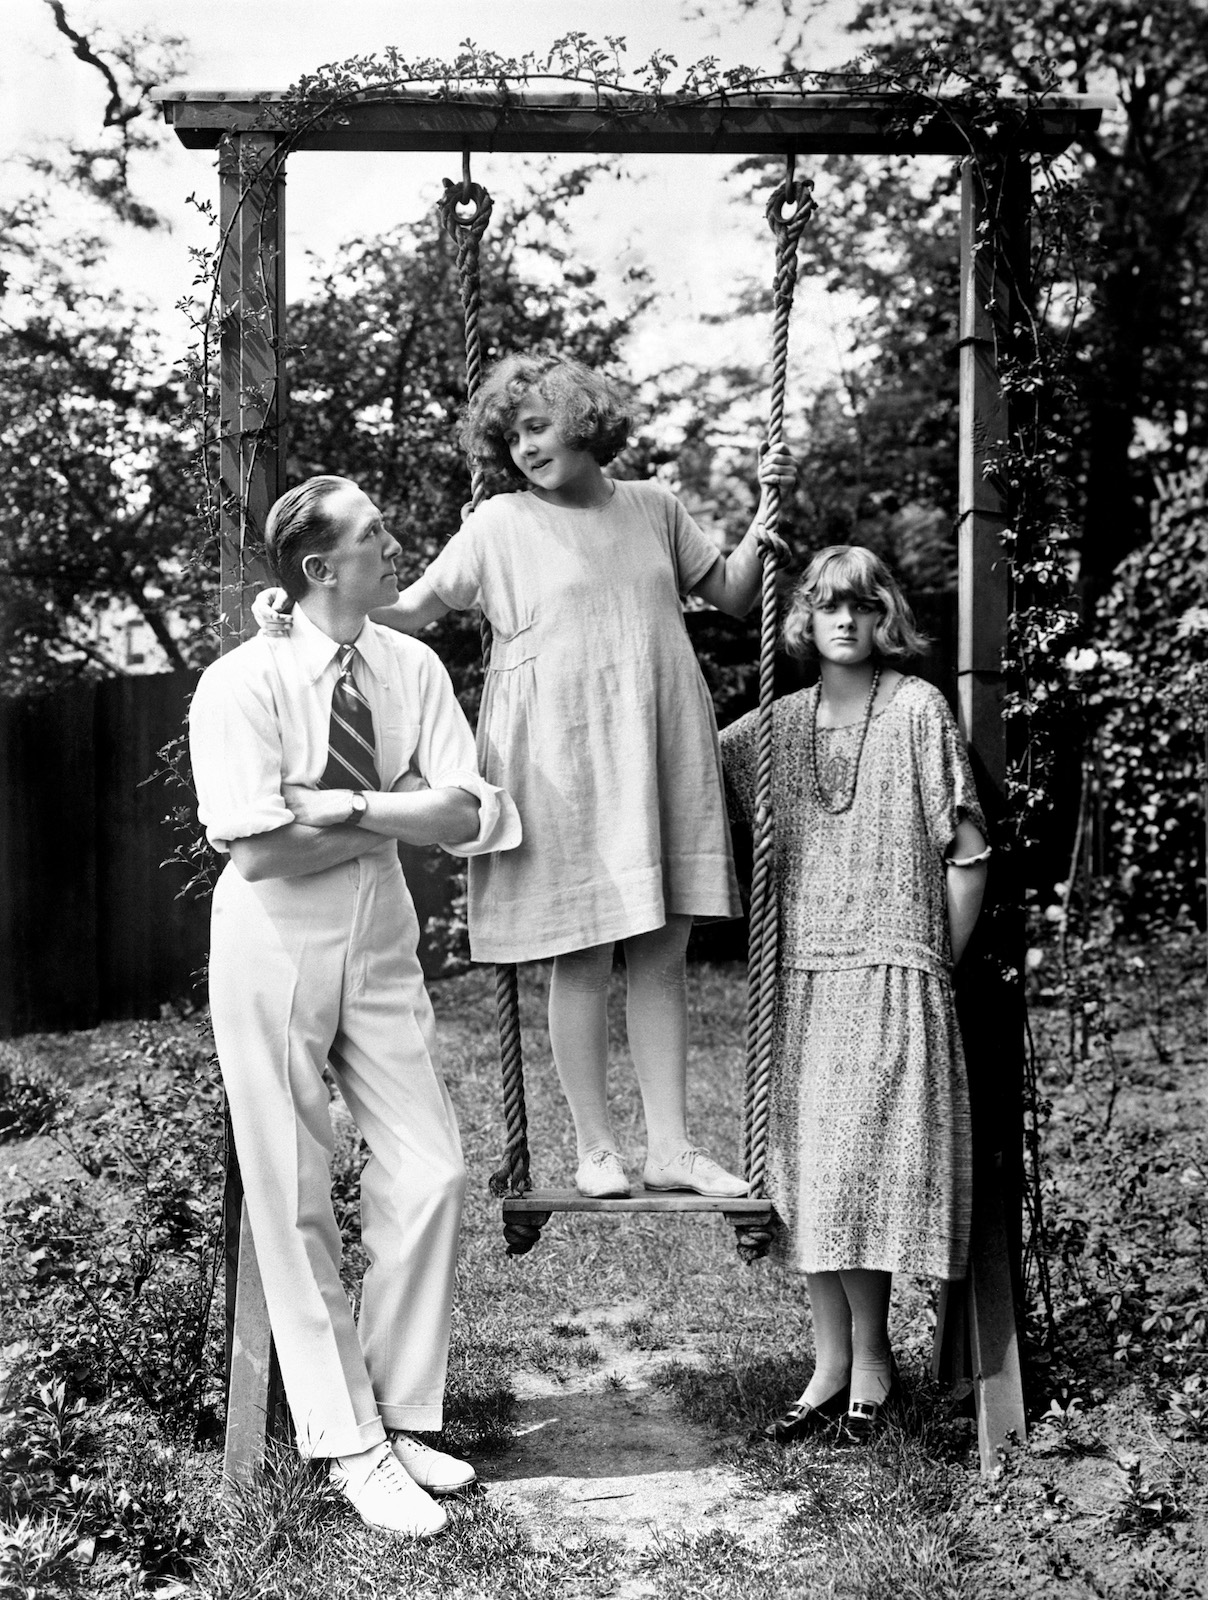 Gerald de Maurier, at Cannon Hall, Hampstead, with his two daughters, Jeanne and Daphne at about the time Tallulah was appearing with Gerald in The Dancers.